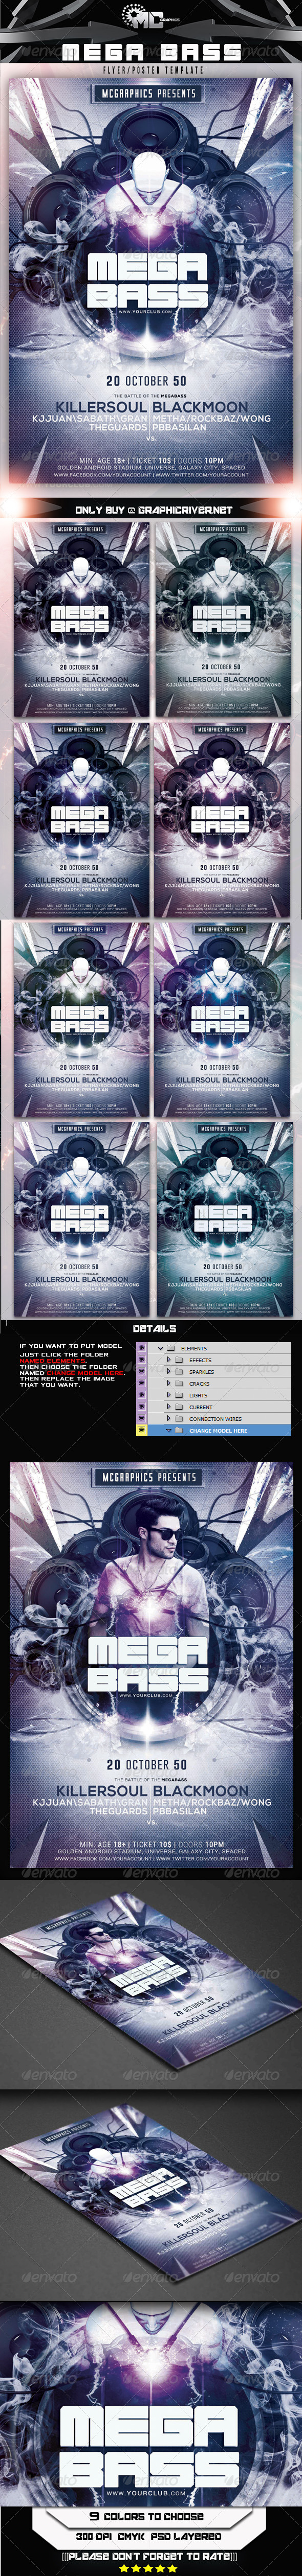 GraphicRiver Mega Bass Flyer Poster Template 7910865